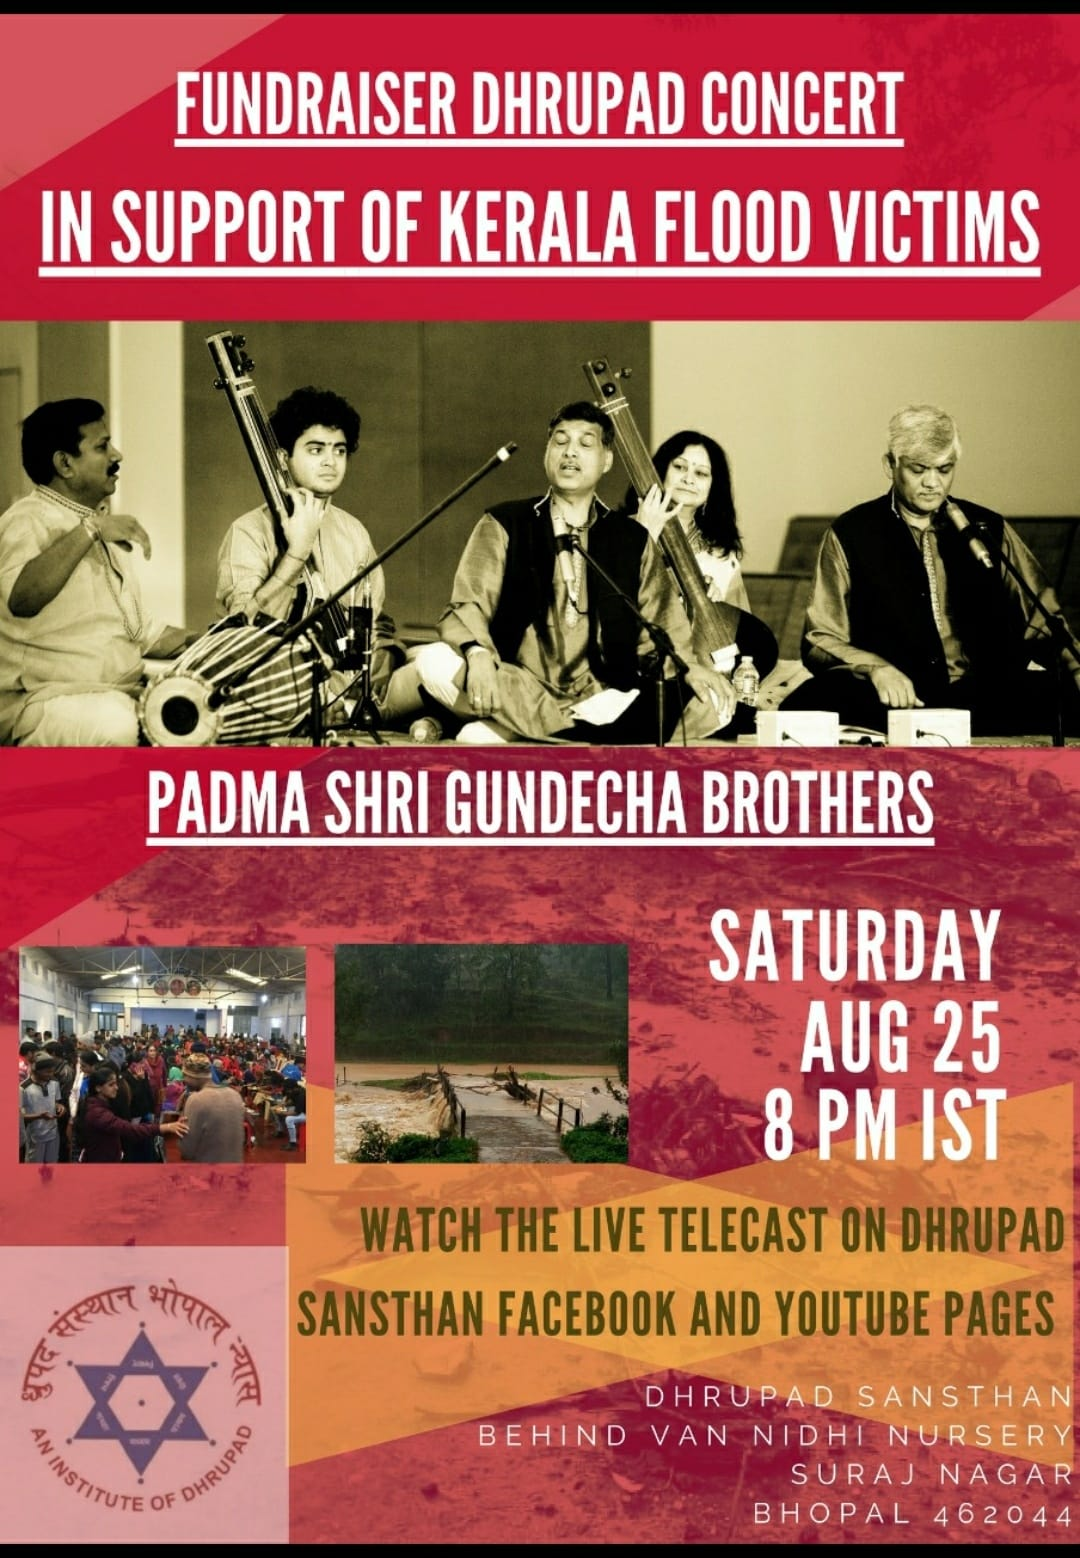 Dhrupad Concert by Gundecha Brothers, Fundraiser for Kerala